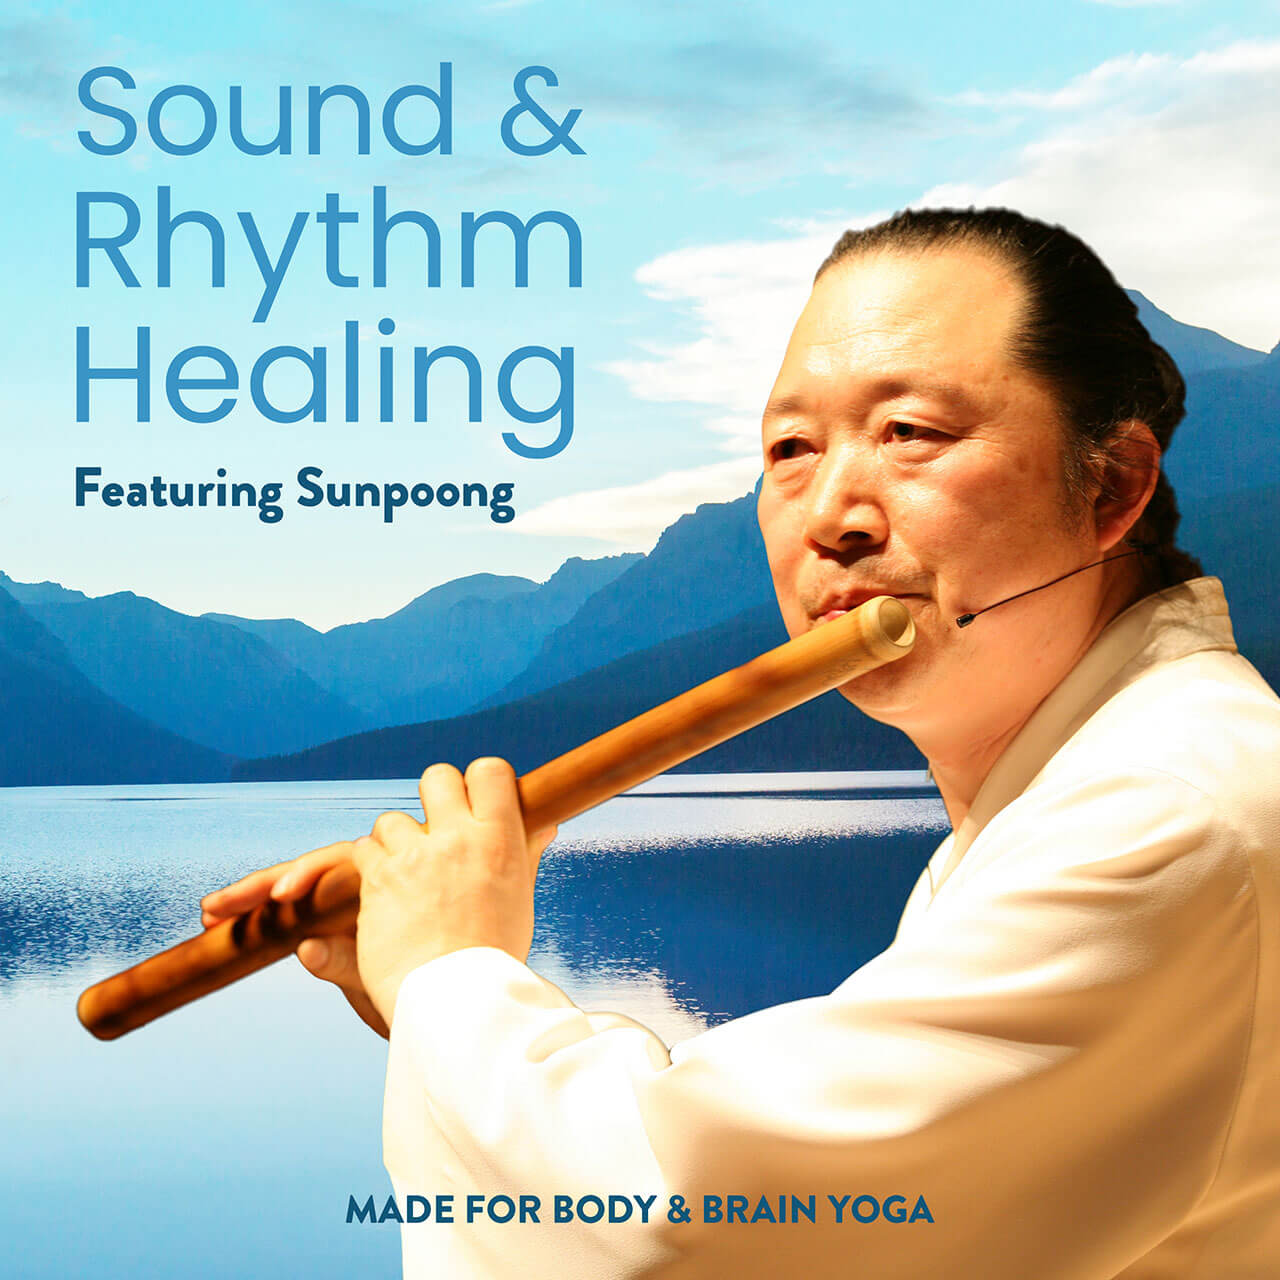 Sound & Rhythm Healing by Sun Poong